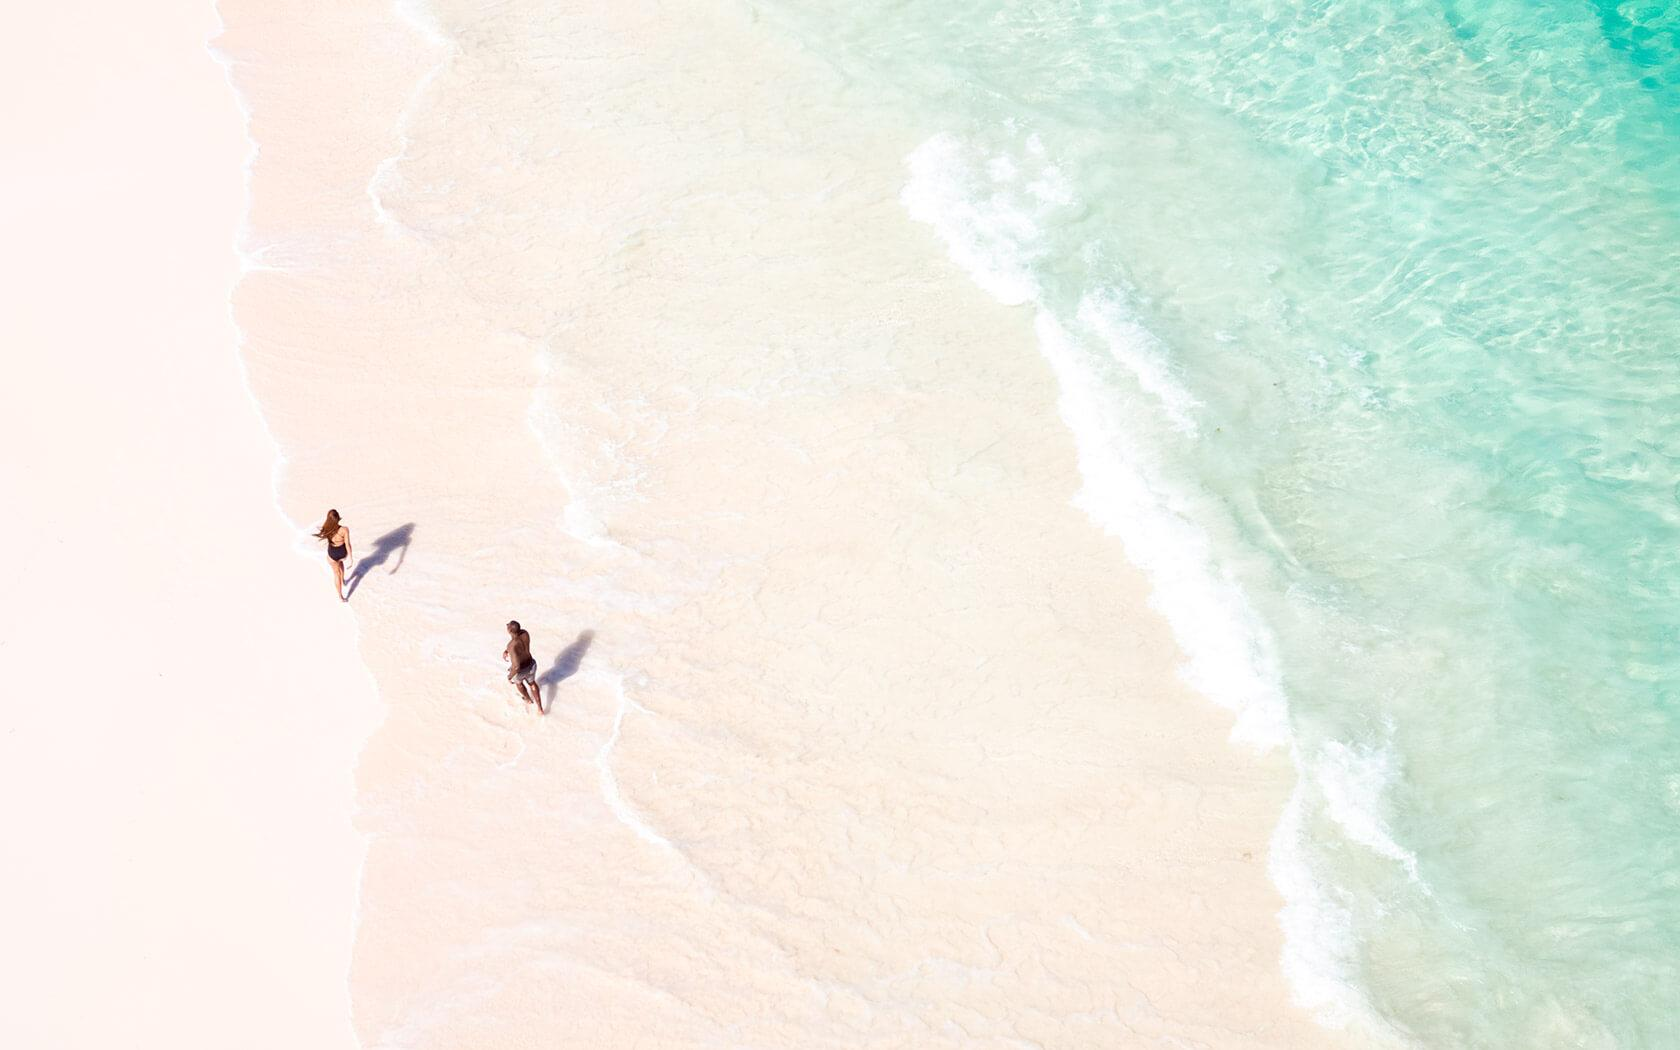 aerial view of two people running on beach